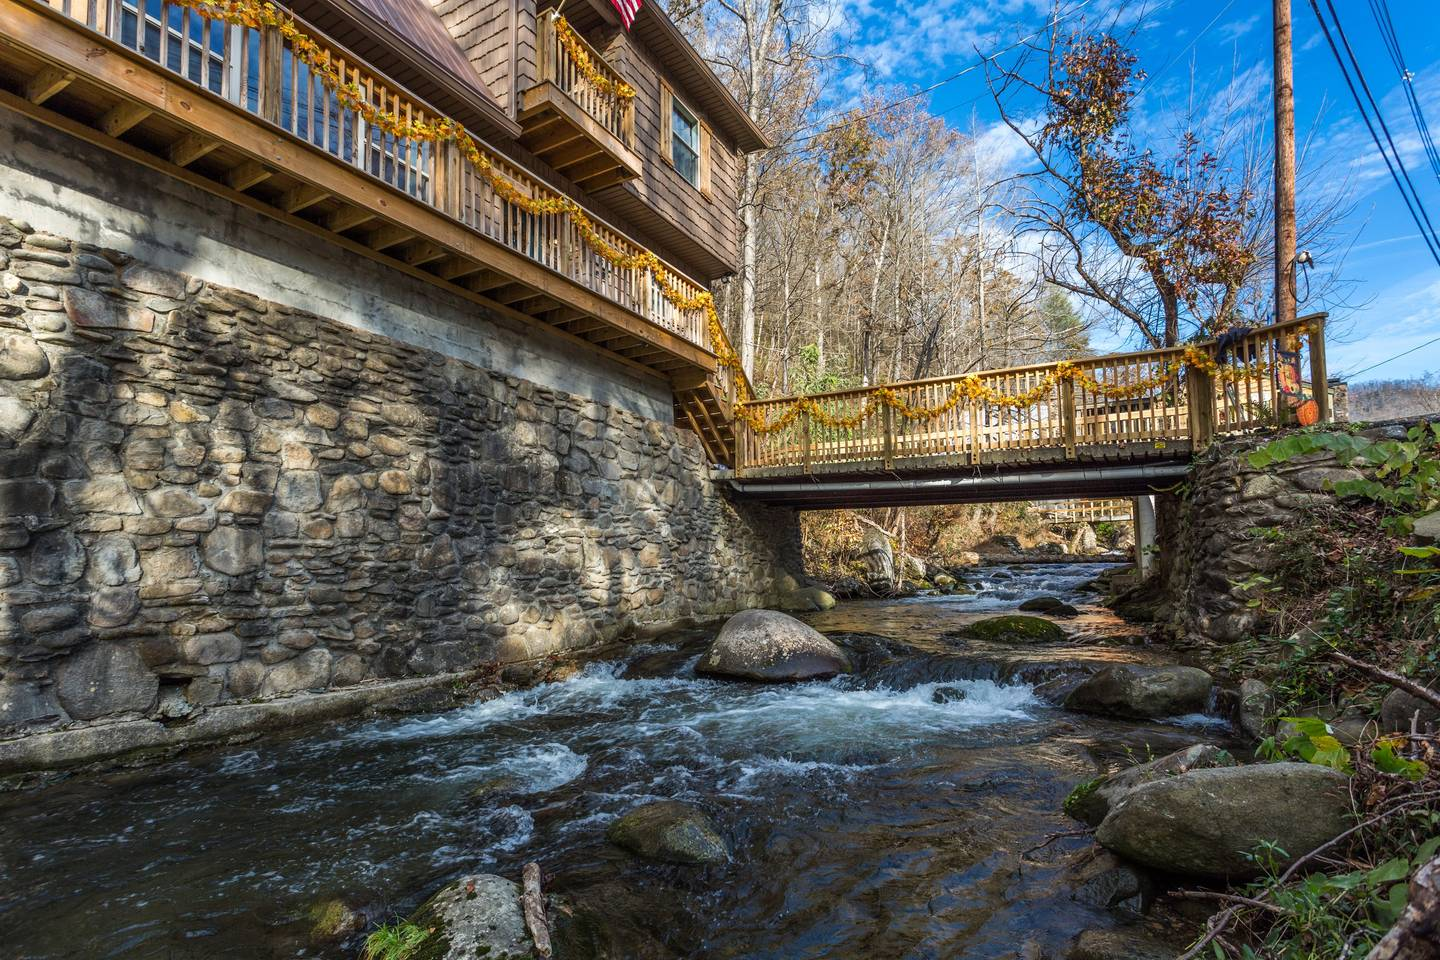 On Roaring Fork/Walk 2 DwTn Gatlinburg/Hot Tub photo 18541232